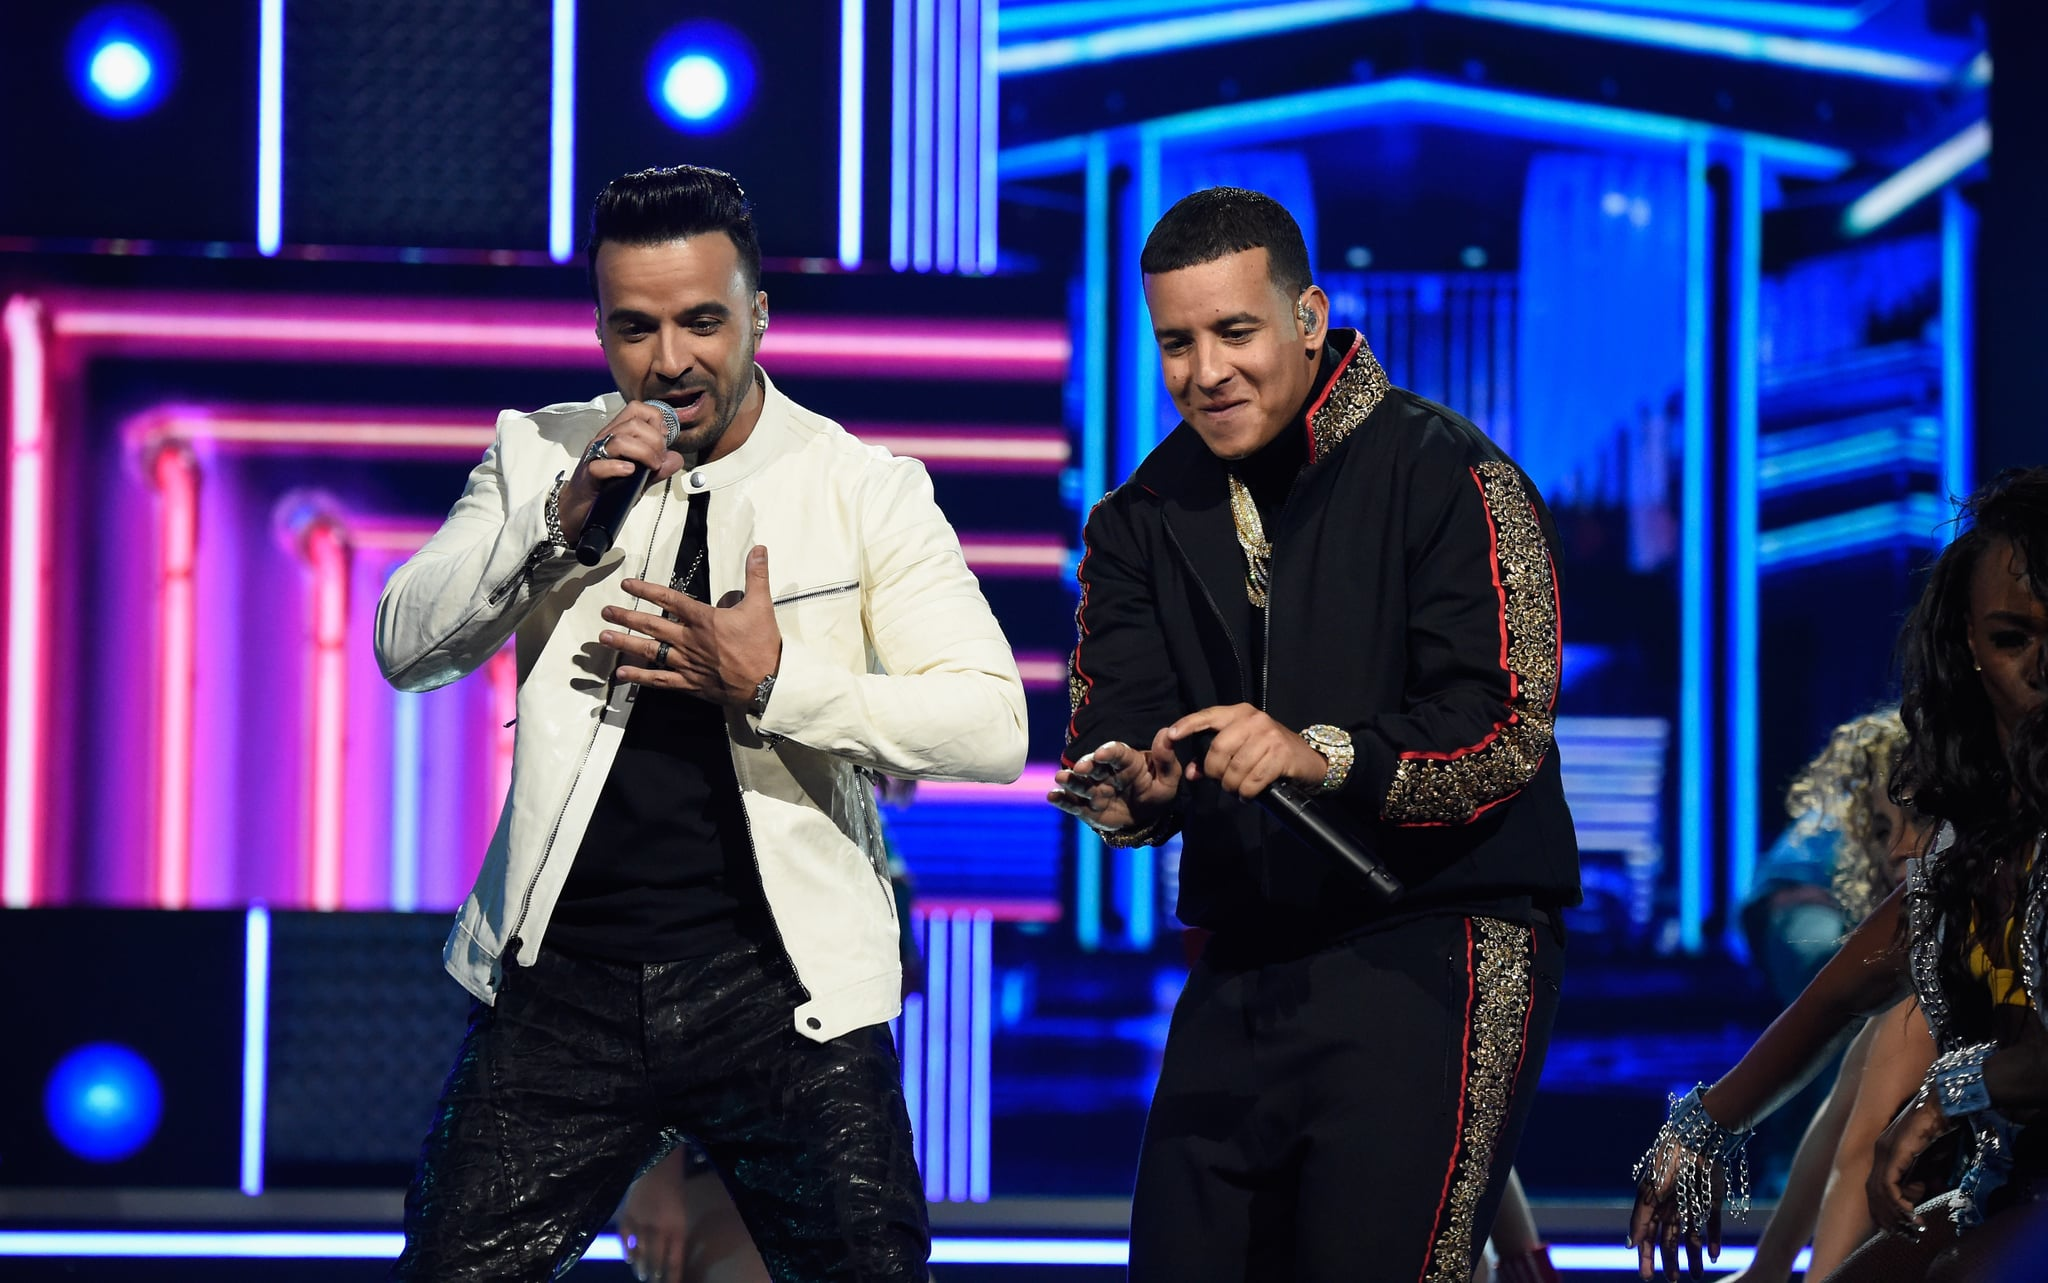 NEW YORK, NY - JANUARY 28:  Recording artists Luis Fonsi and Daddy Yankee perform onstage during the 60th Annual GRAMMY Awards at Madison Square Garden on January 28, 2018 in New York City.  (Photo by Kevin Mazur/Getty Images for NARAS)